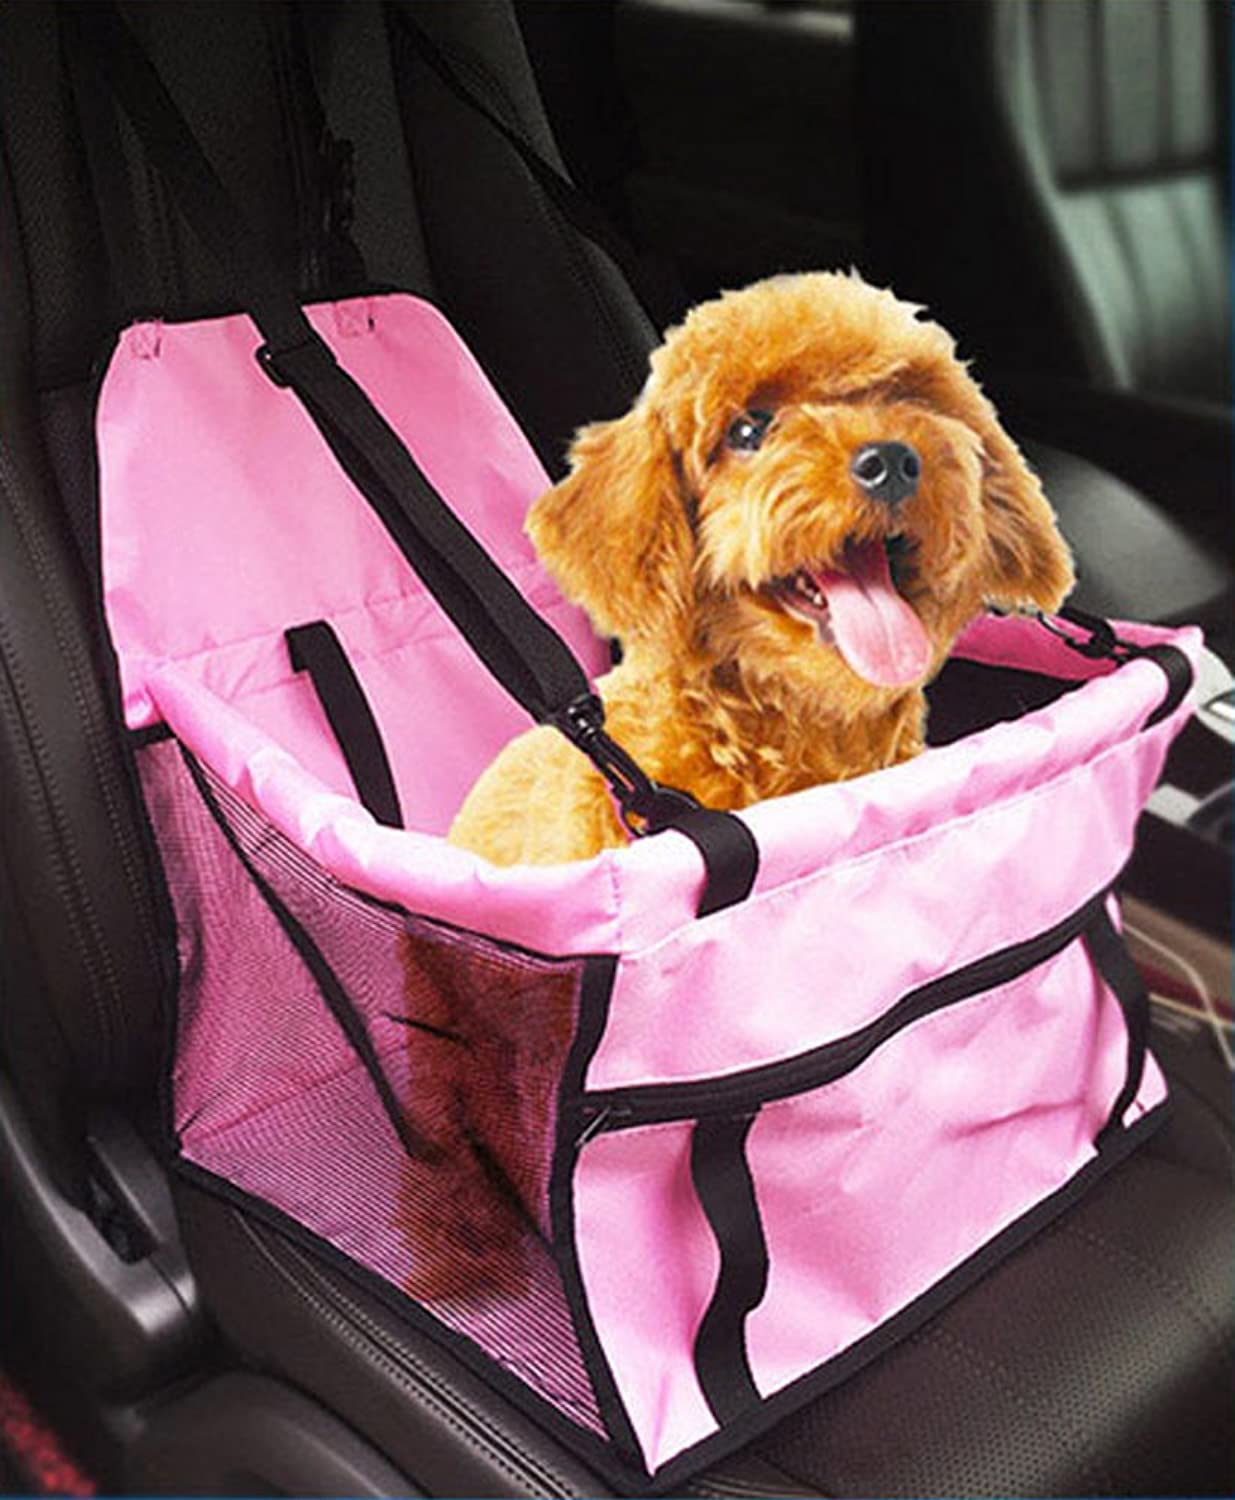 Dog car seat , Collapsible Car Pet sleeping bag Dog Seats Pet Booster Seat Carrier, Multi Function Deluxe Travel Bag for Dogs by Outdoor's Sky